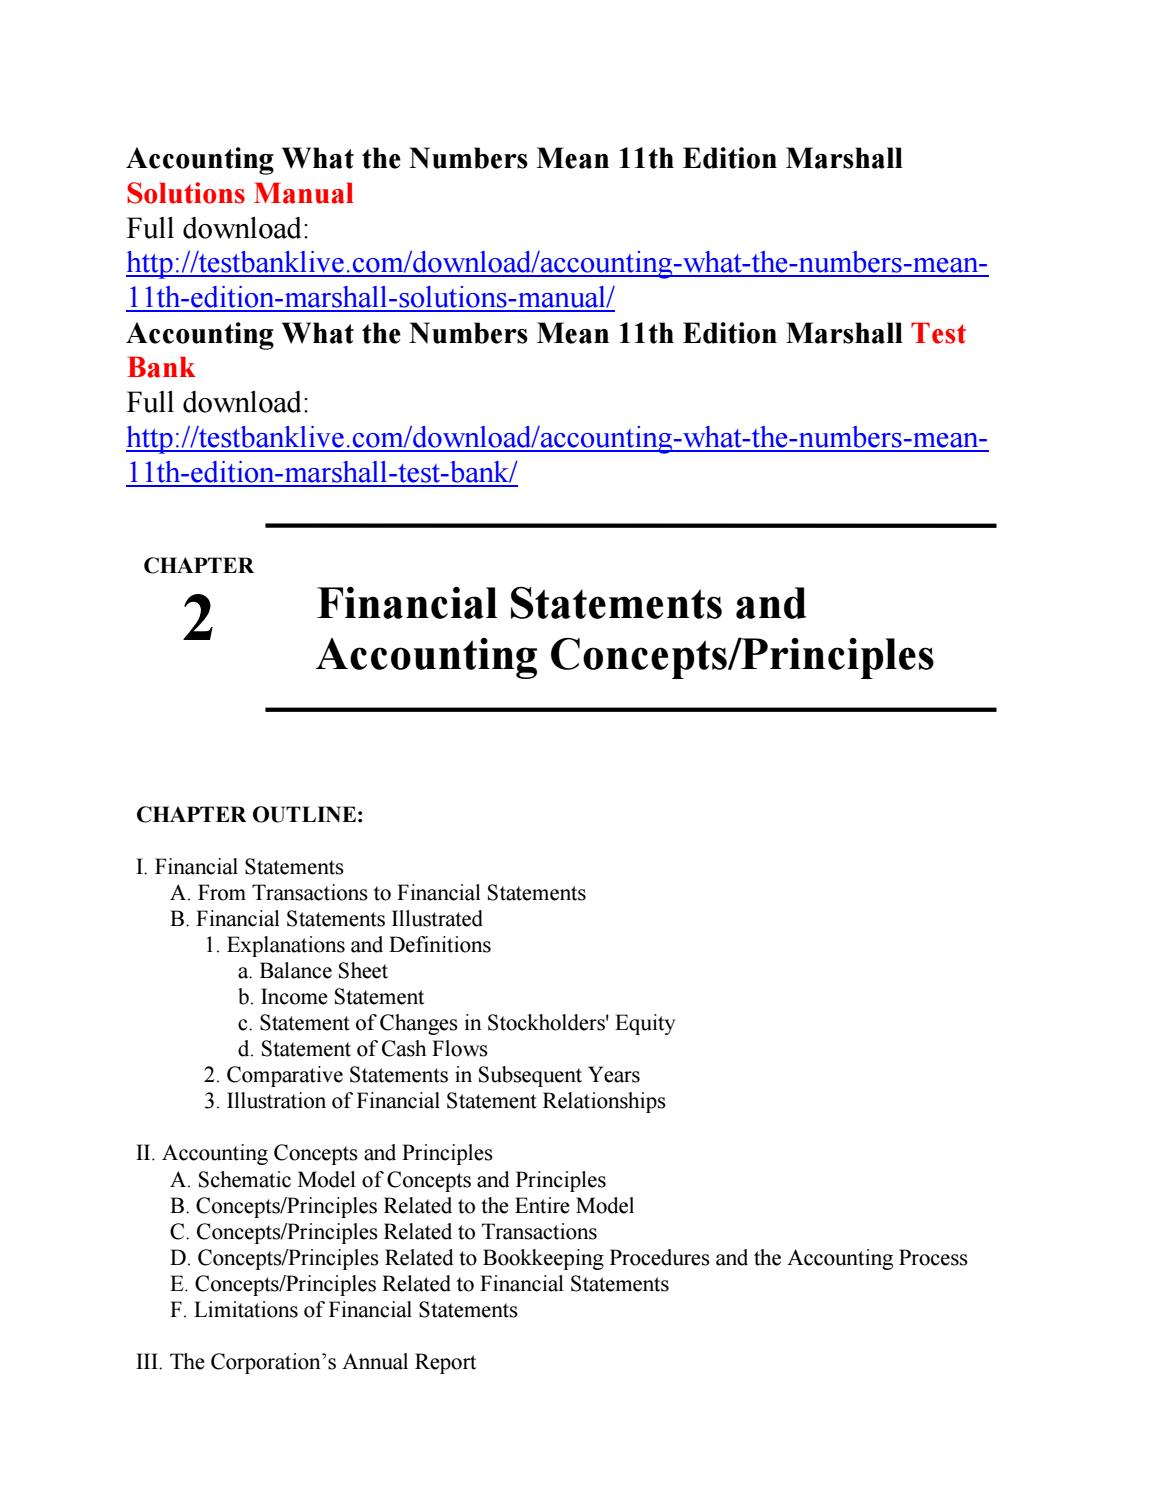 Accounting what the numbers mean 11th edition marshall solutions manual by  create111 - issuu